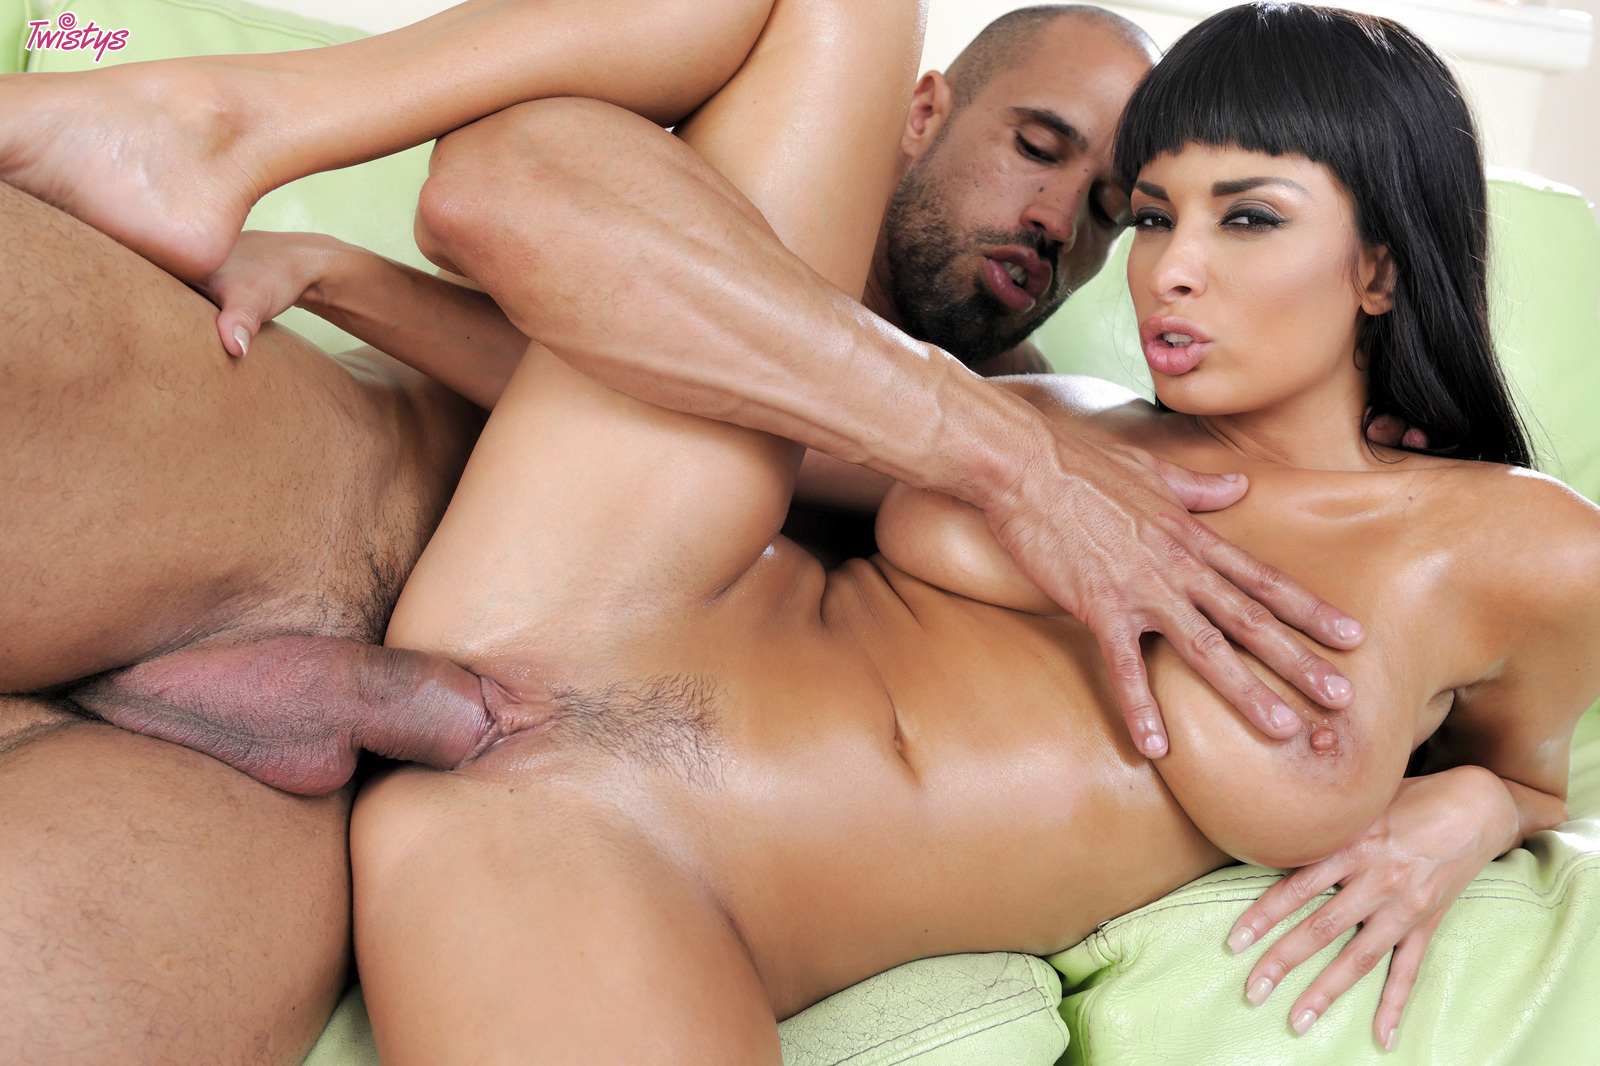 Just Take Me!.. featuring Anissa Kate | Twistys.com